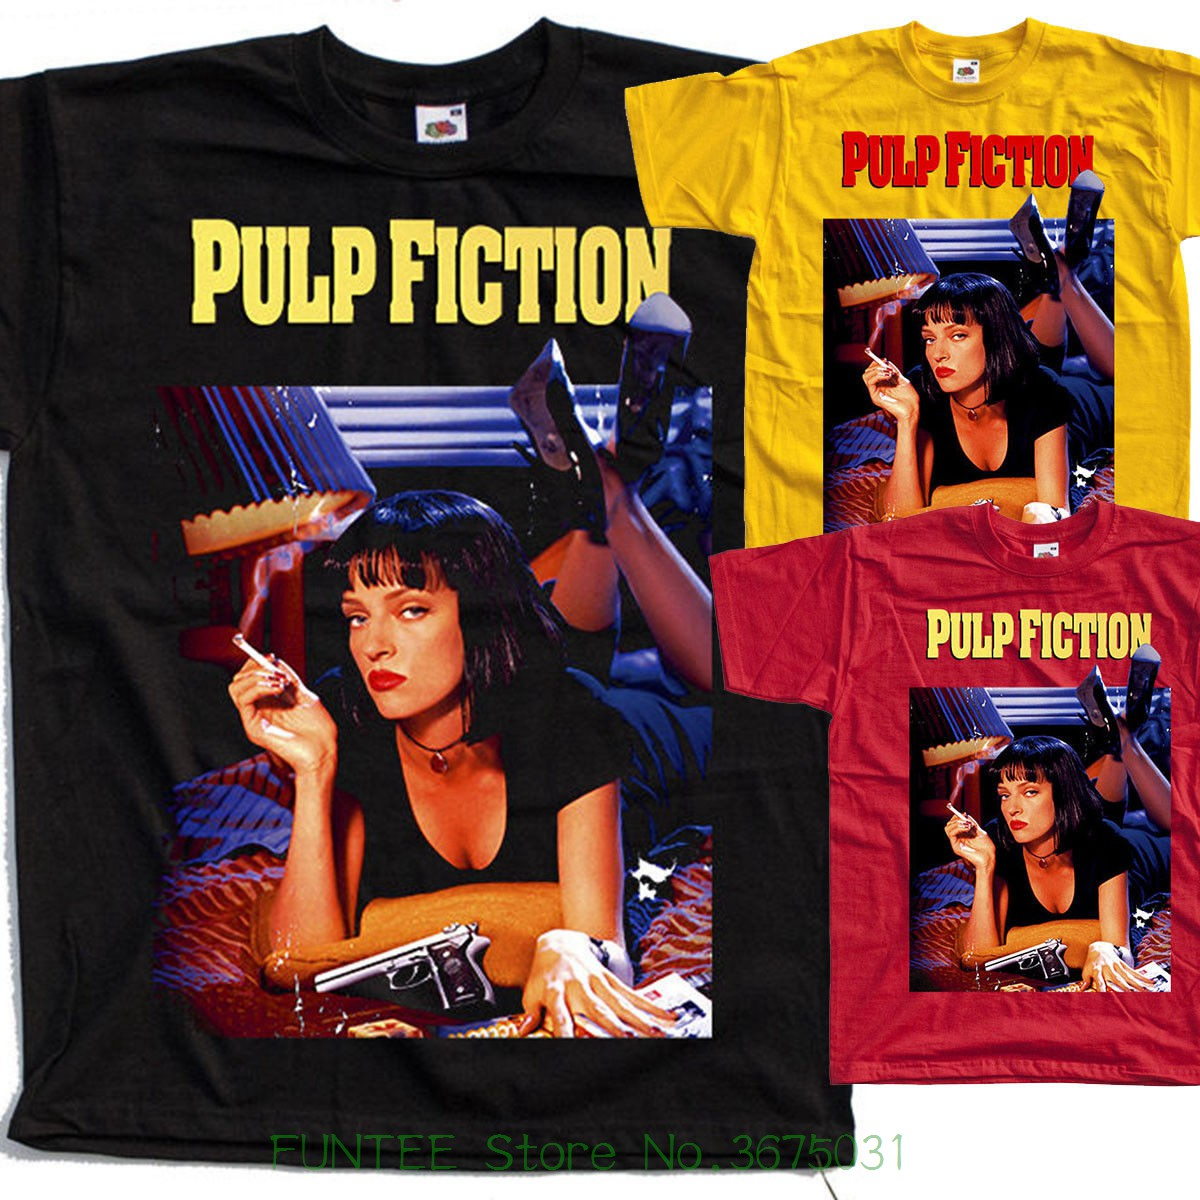 new-2018-summer-fashion-pulp-fiction-poster-1994-quentin-font-b-tarantino-b-font-t-shirt-all-sizes-s-to-5xl